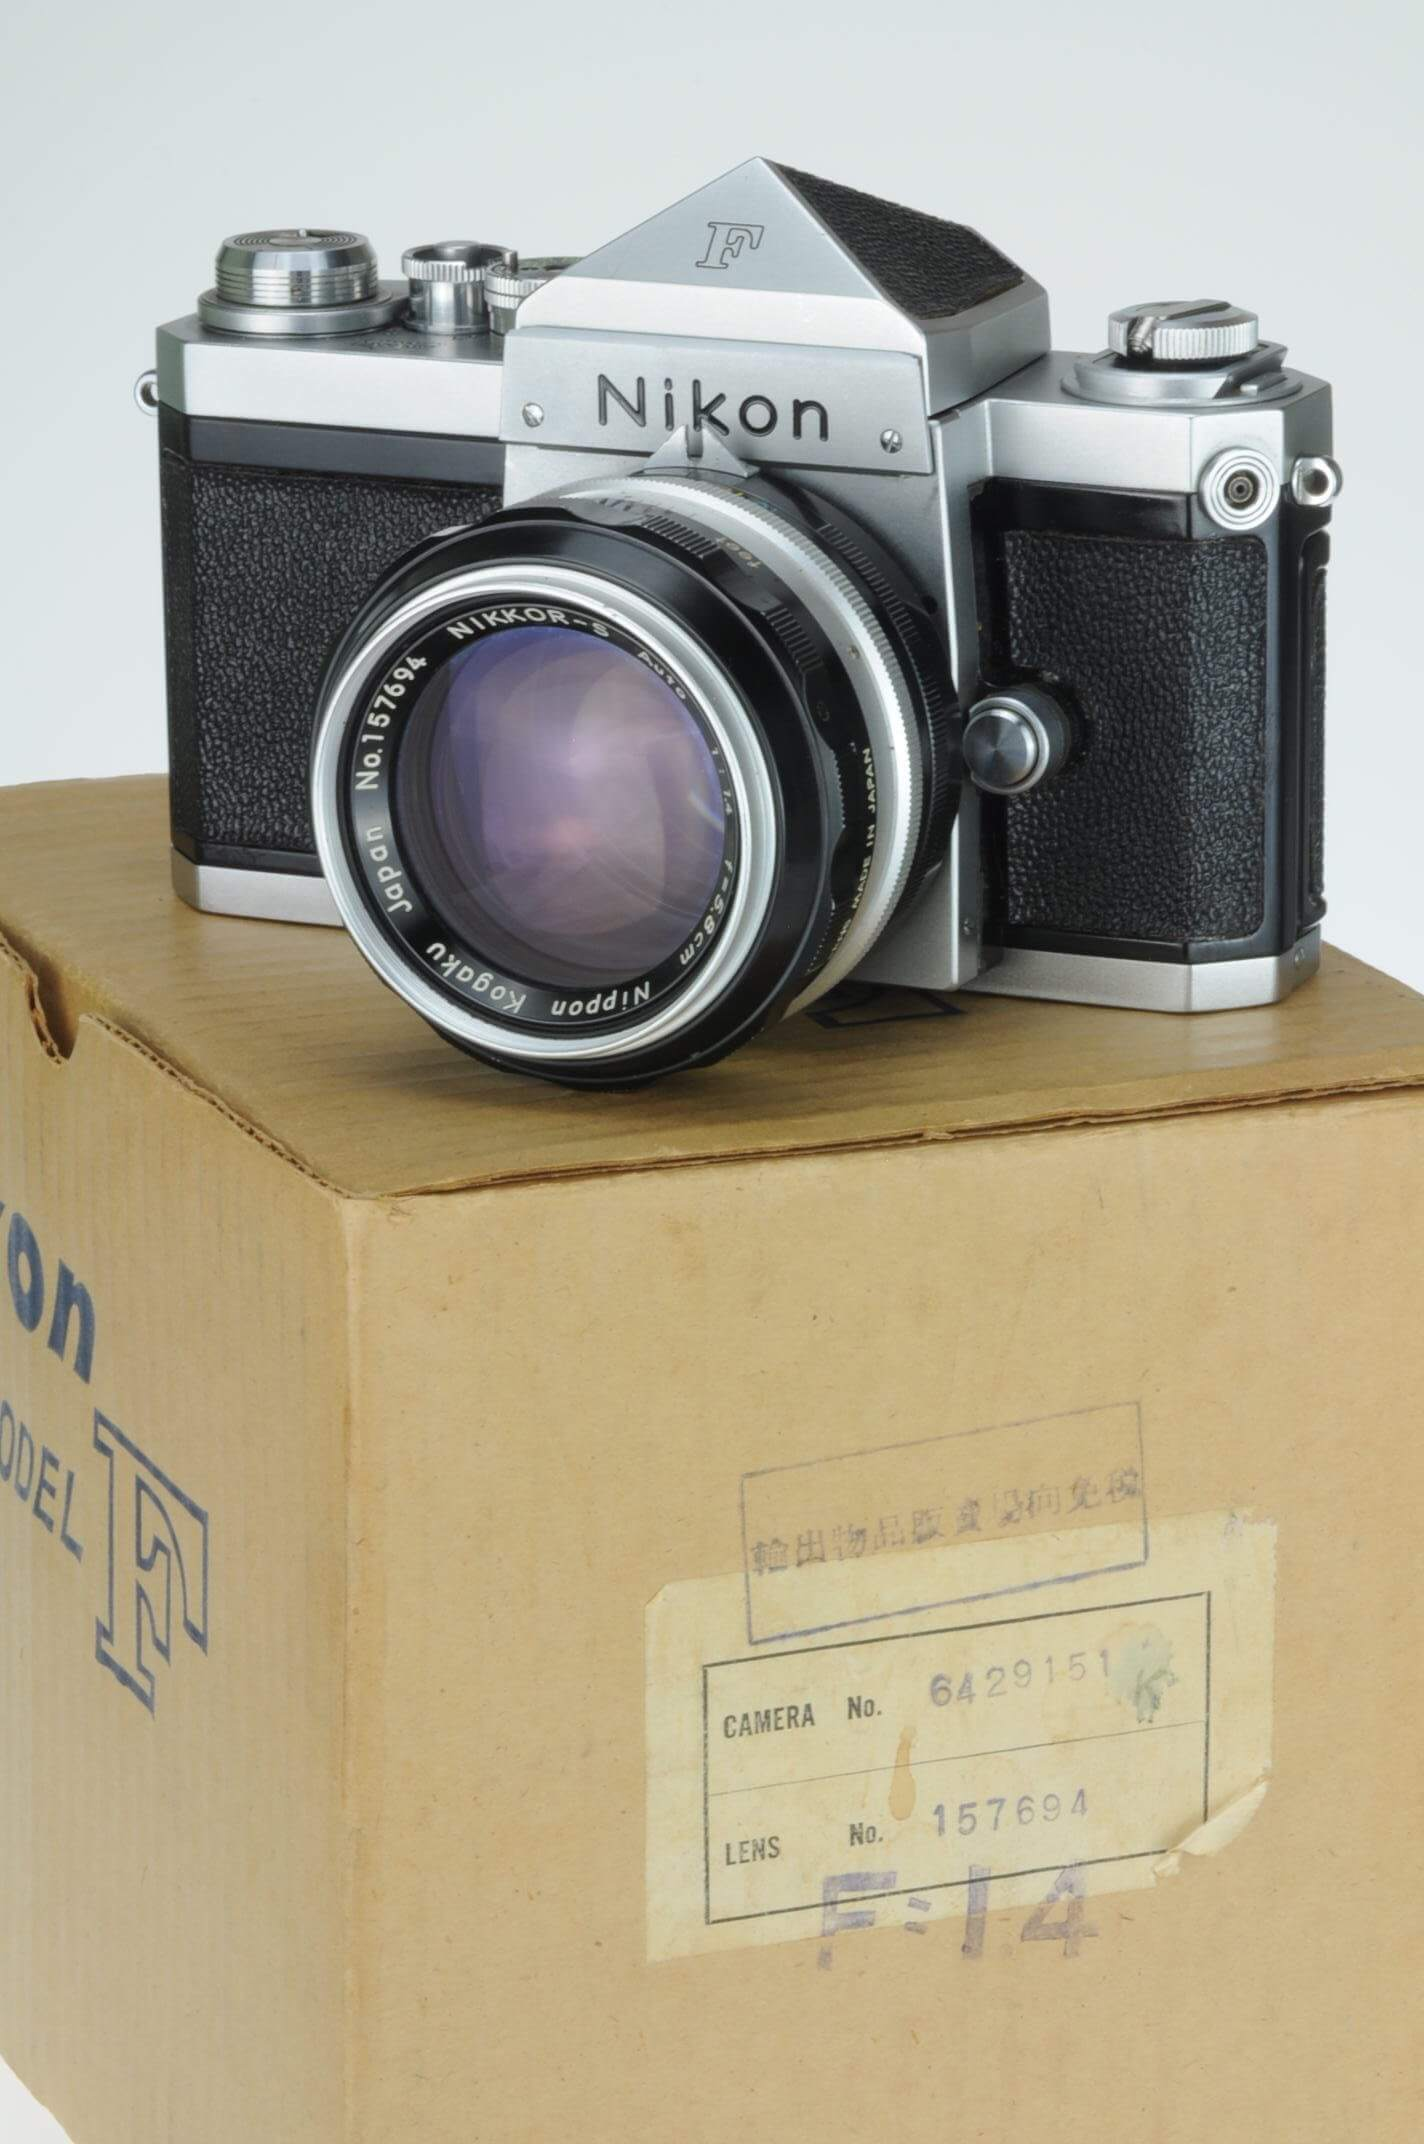 Nikon F with 5.8cm f1.4 lens, purchased together in 1961, with box, stunning!